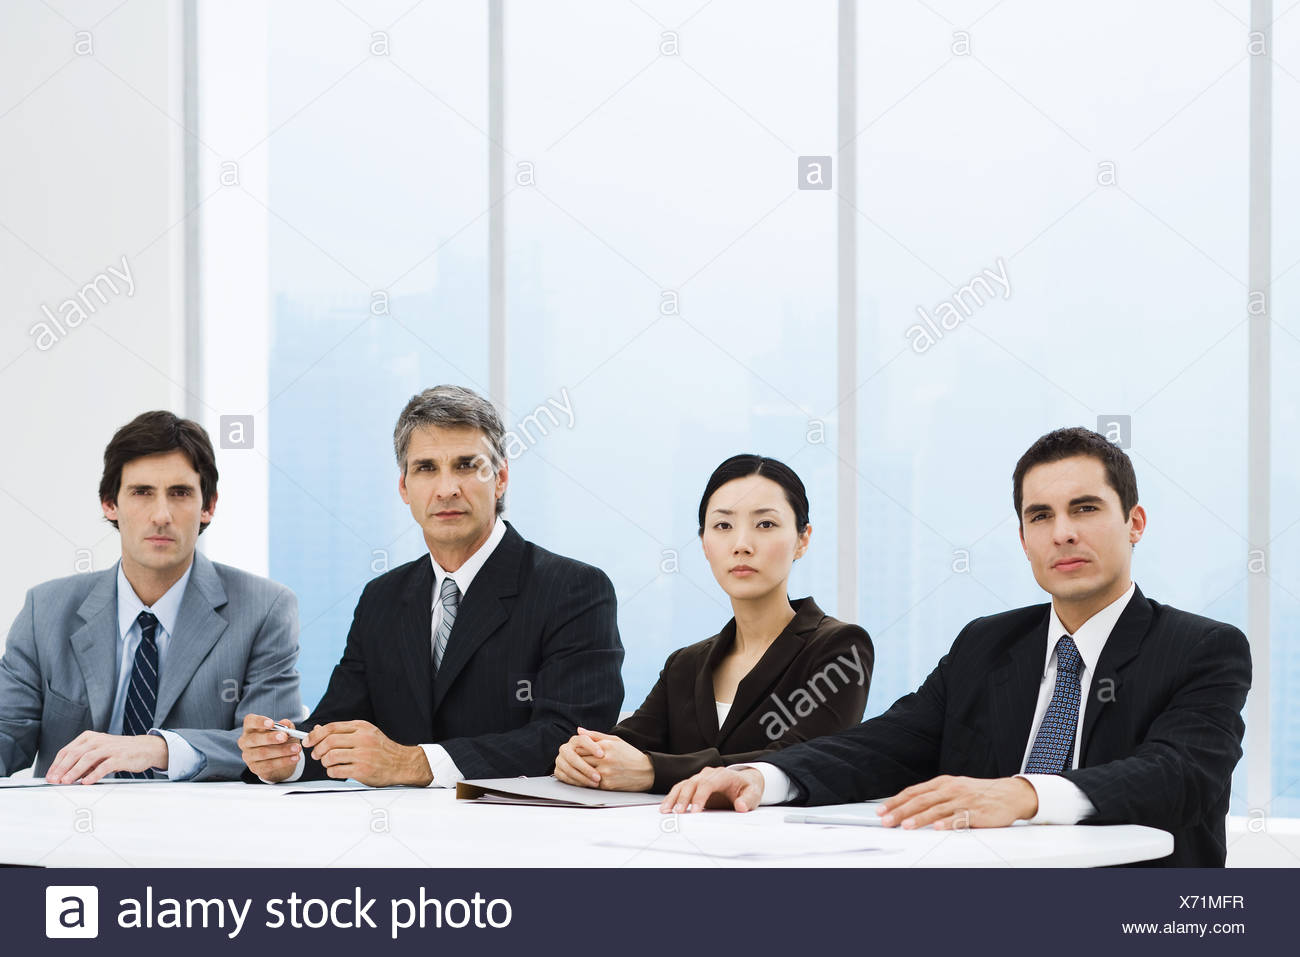 Business associates sitting at table, looking at camera, serious expressions - Stock Image